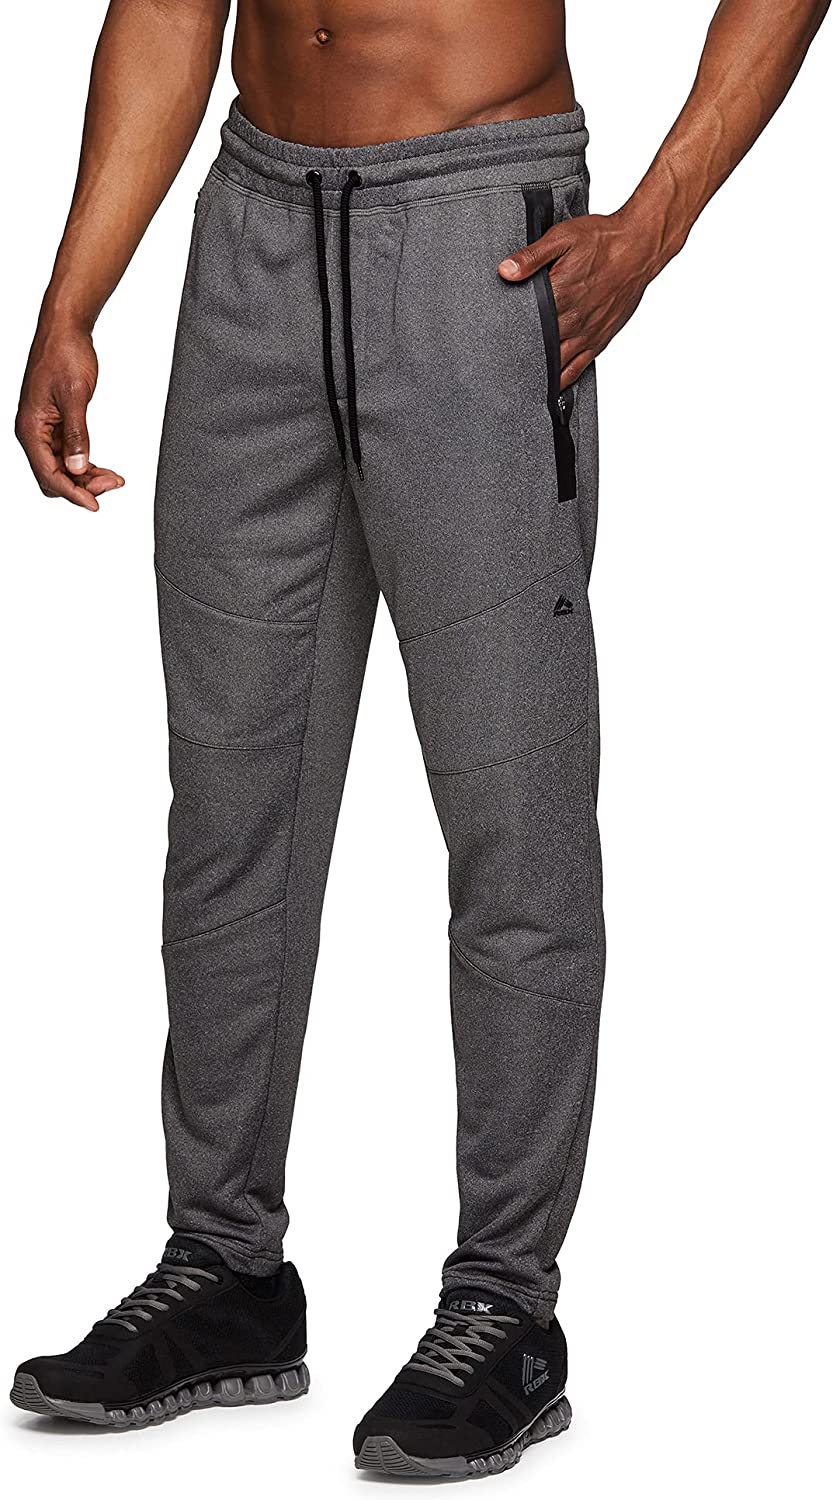 RBX Active Men's Athletic Performance Quick Clearance SALE! Limited time! Breathable New product type Taper Dry